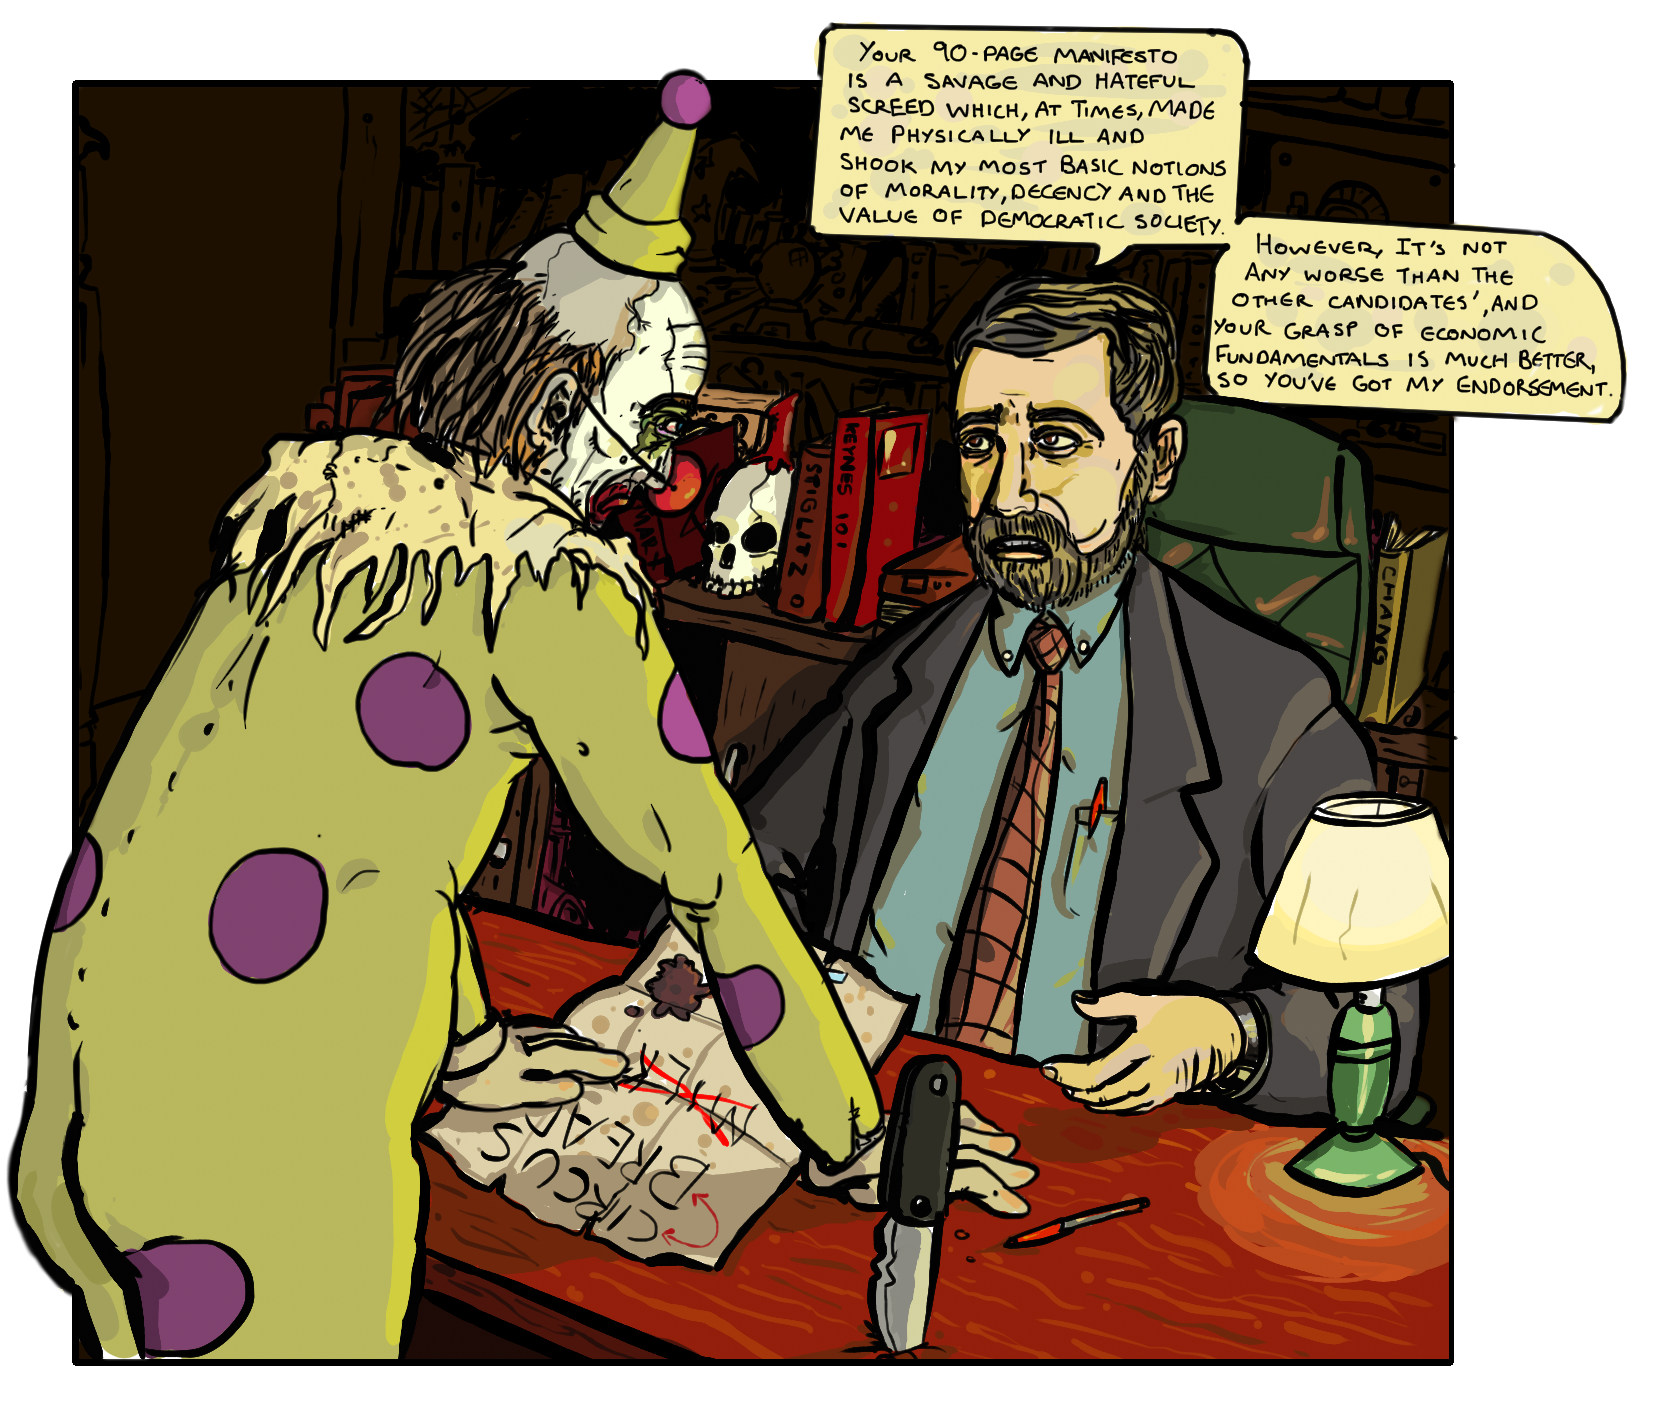 Clown and Krugman